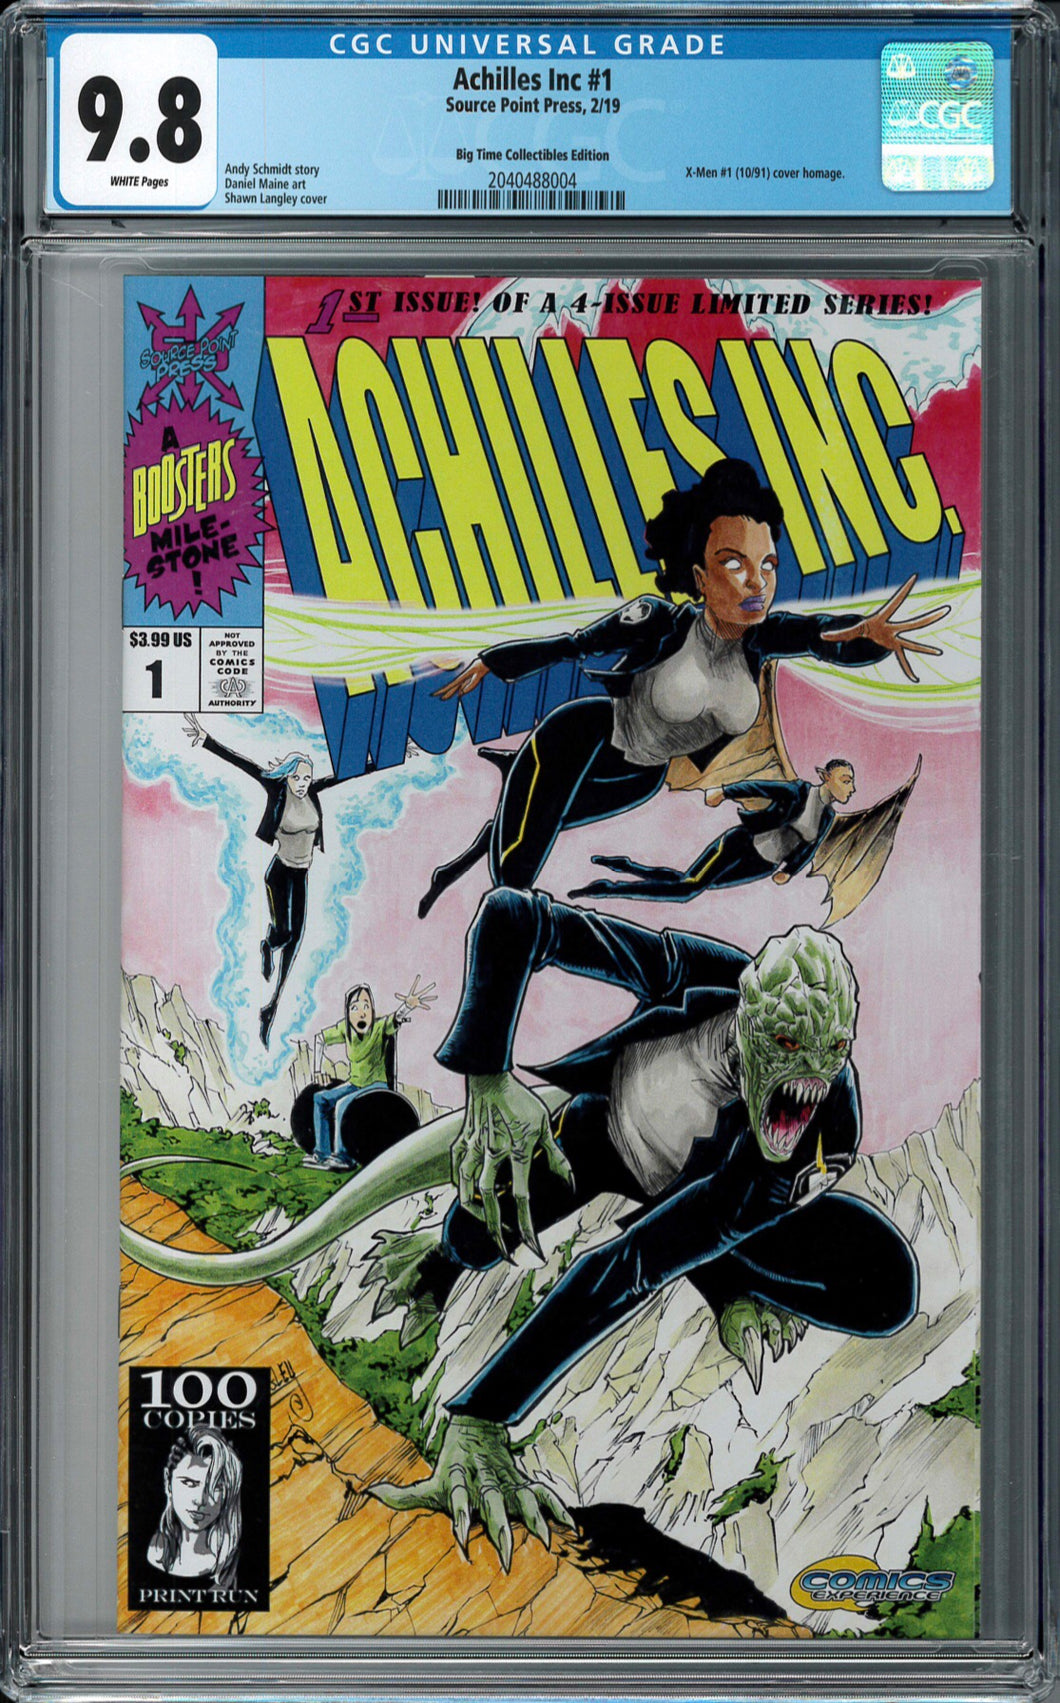 ACHILLES INC #1 BTC EXCLUSIVE CONNECTING VARIANT COVER CGC 9.8 BLUE LABEL